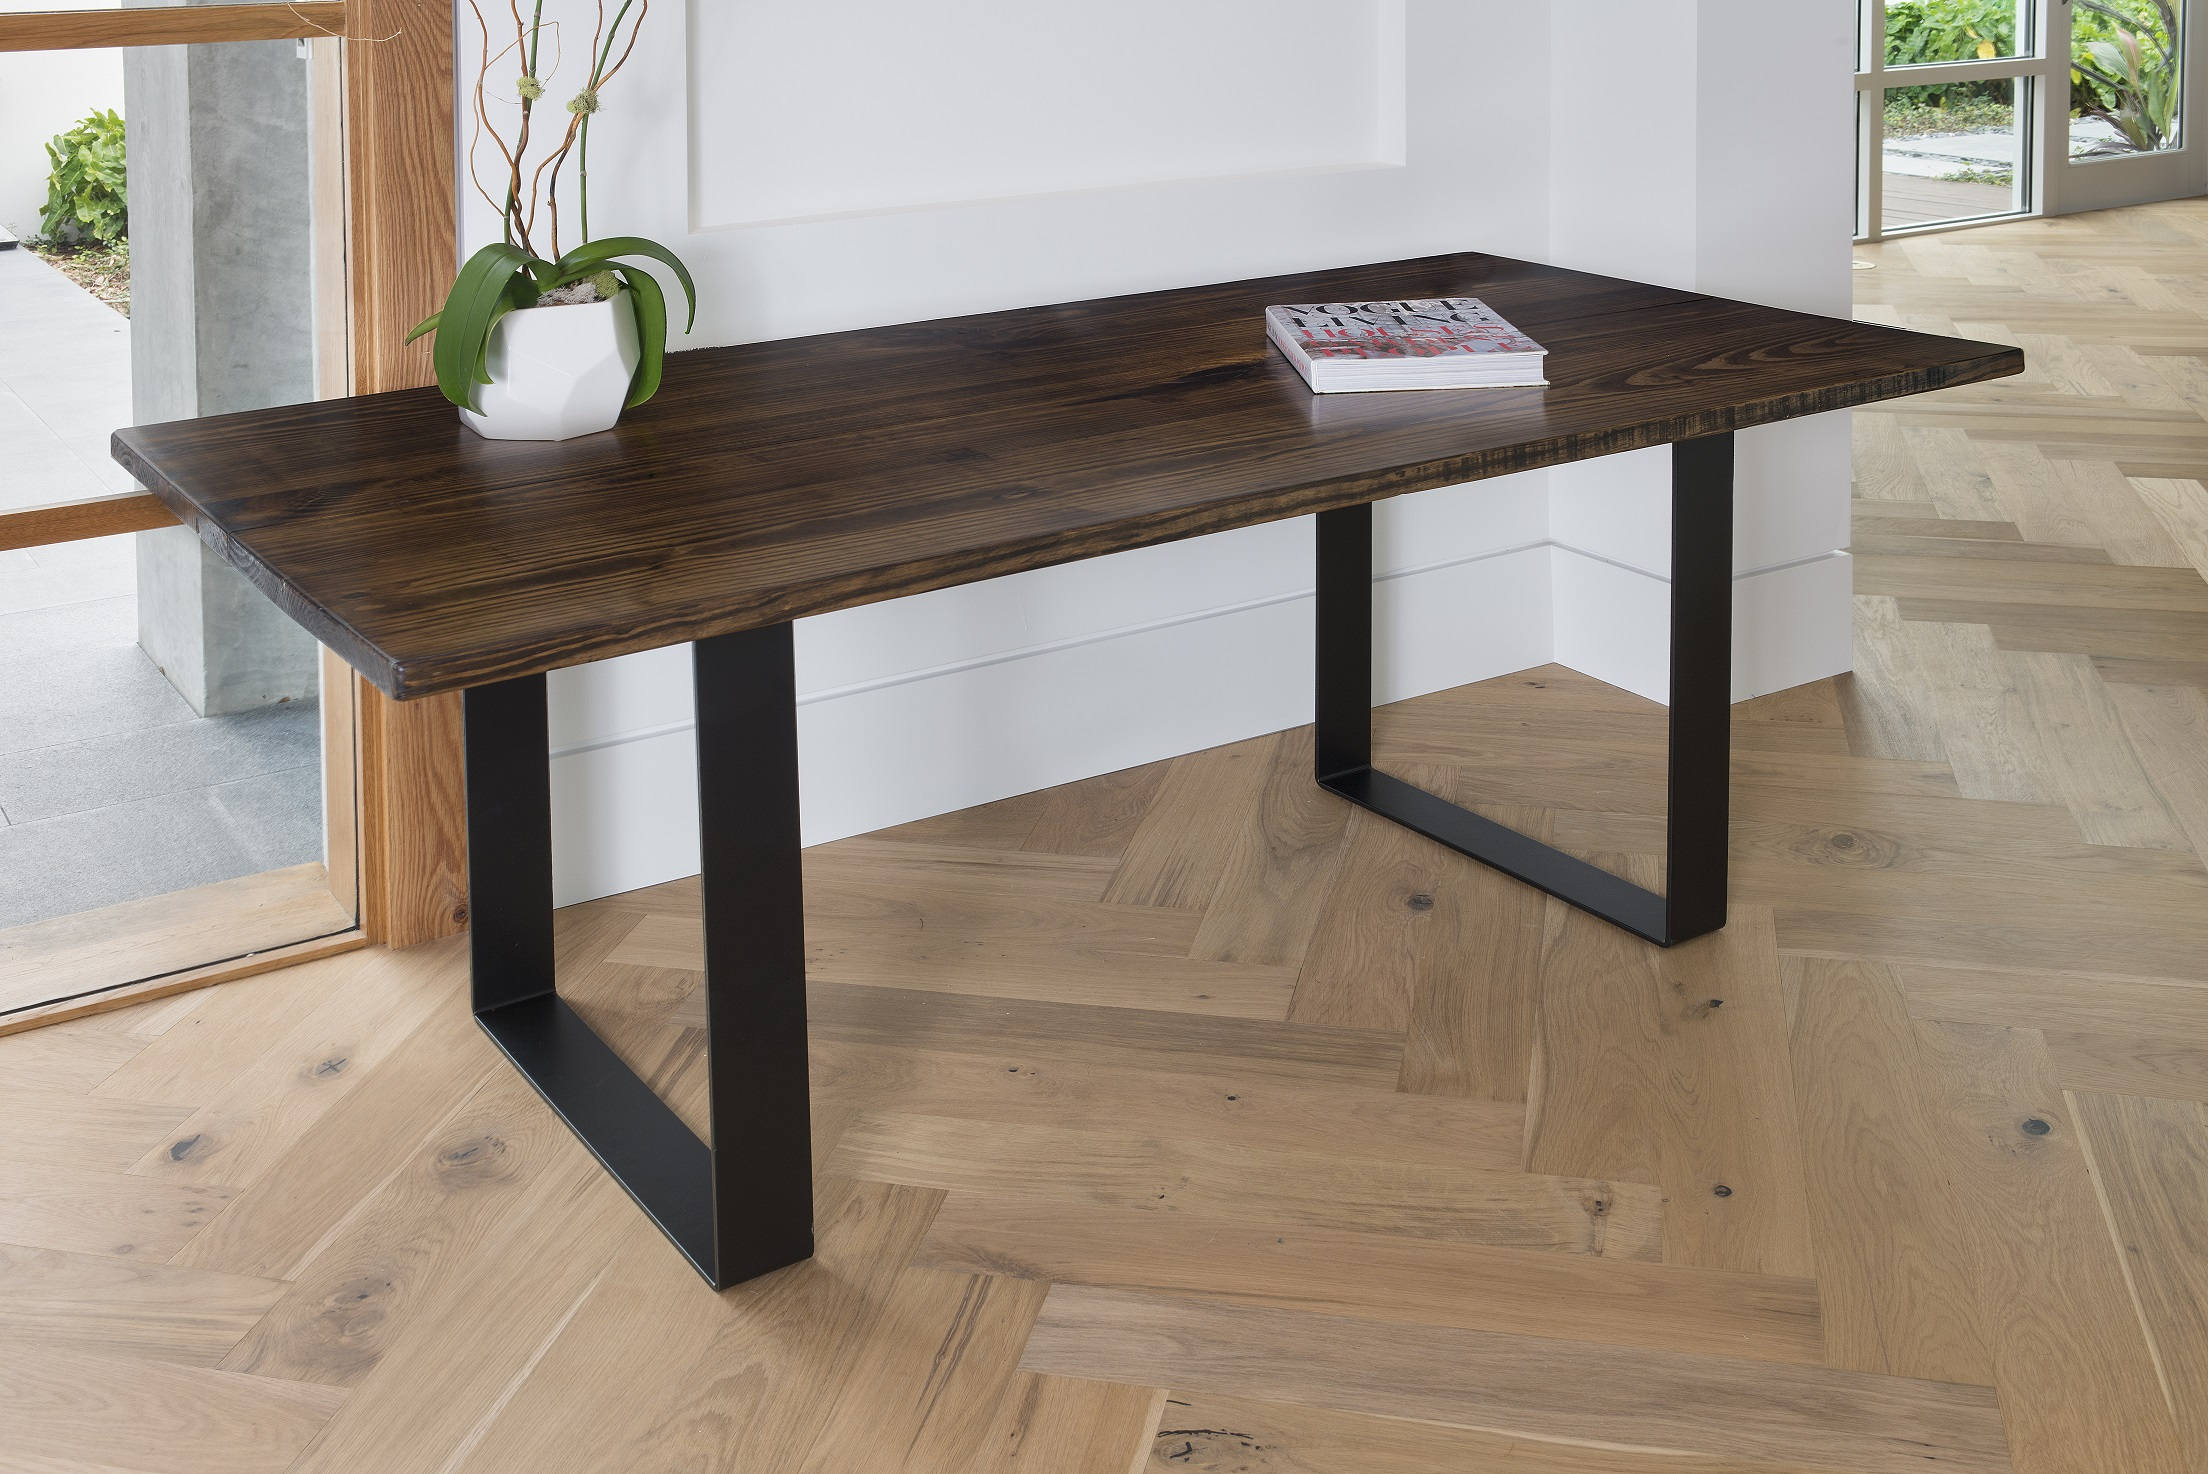 Cafe Table Sale Dining Table Kitchen Table Dining U Legs Dark Walnut Cafe Table Bistro Restaurant Table Steel Legs Dinette Walnut